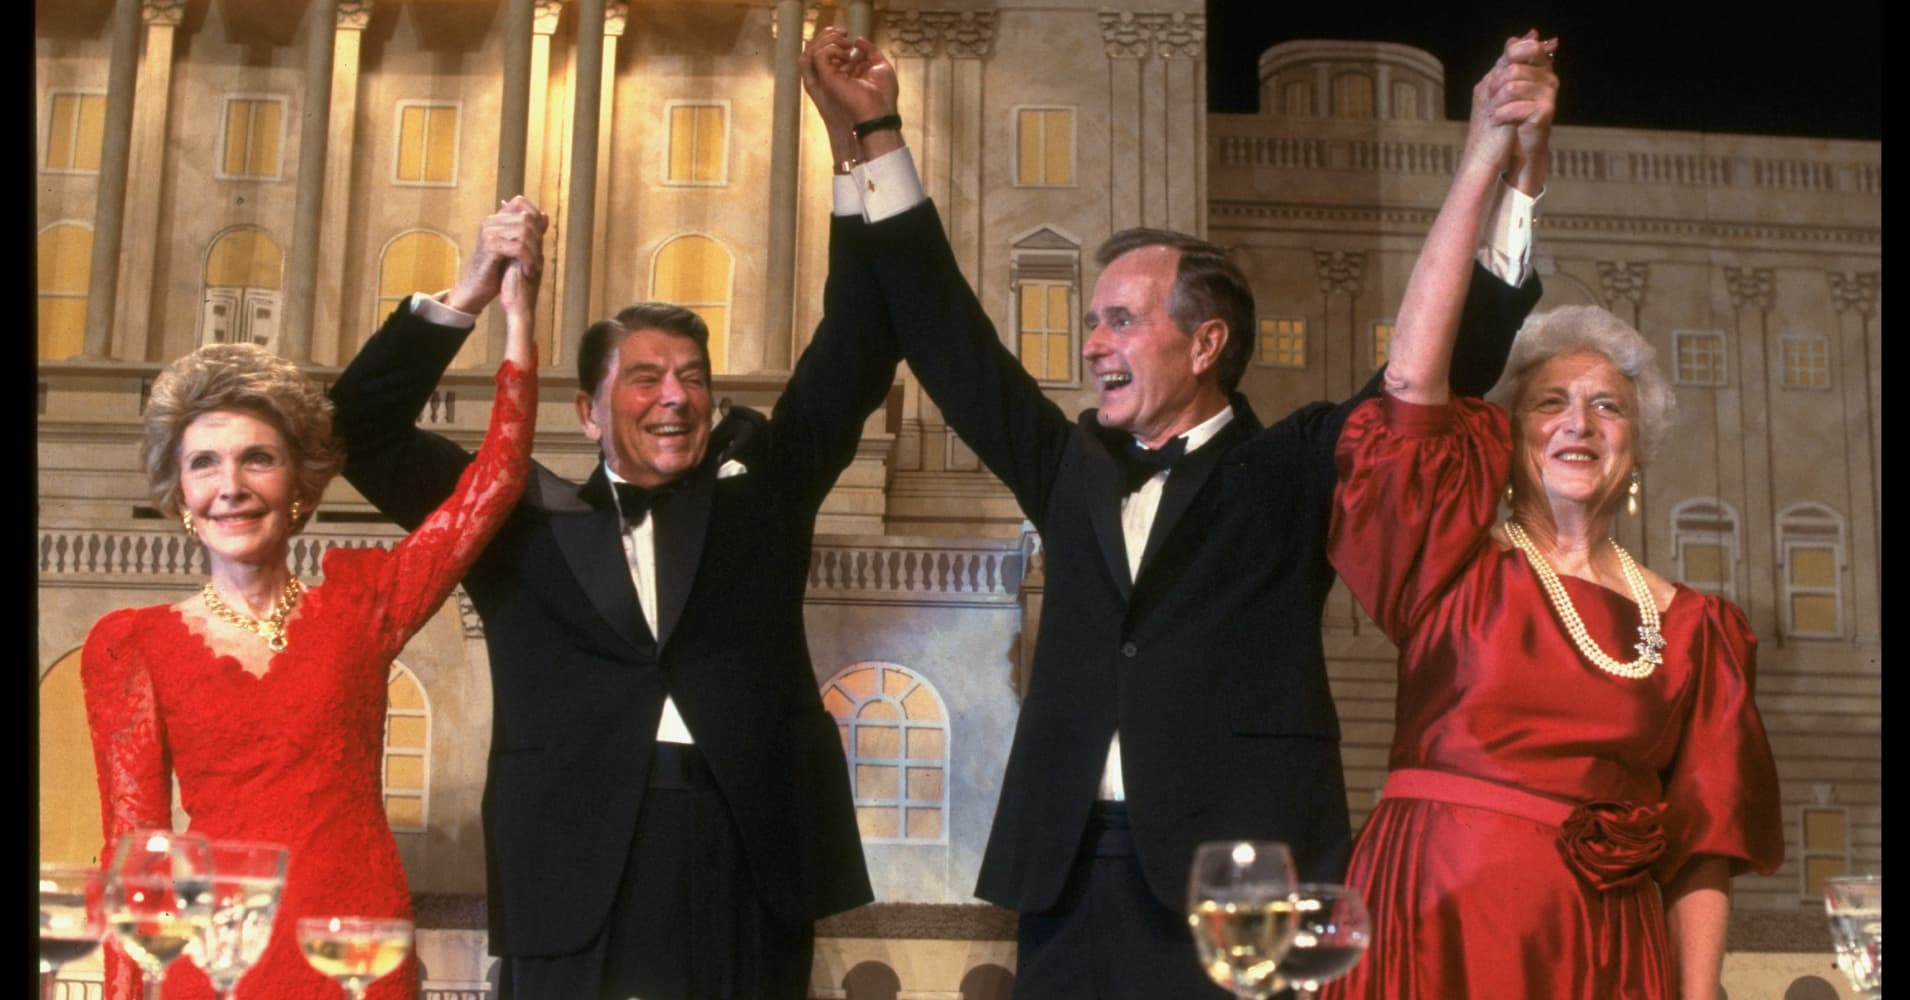 Vice President and Barbara Bush (R) with President and Nancy Reagan as Reagan endorses Bush's presidential candidacy at a dinner.